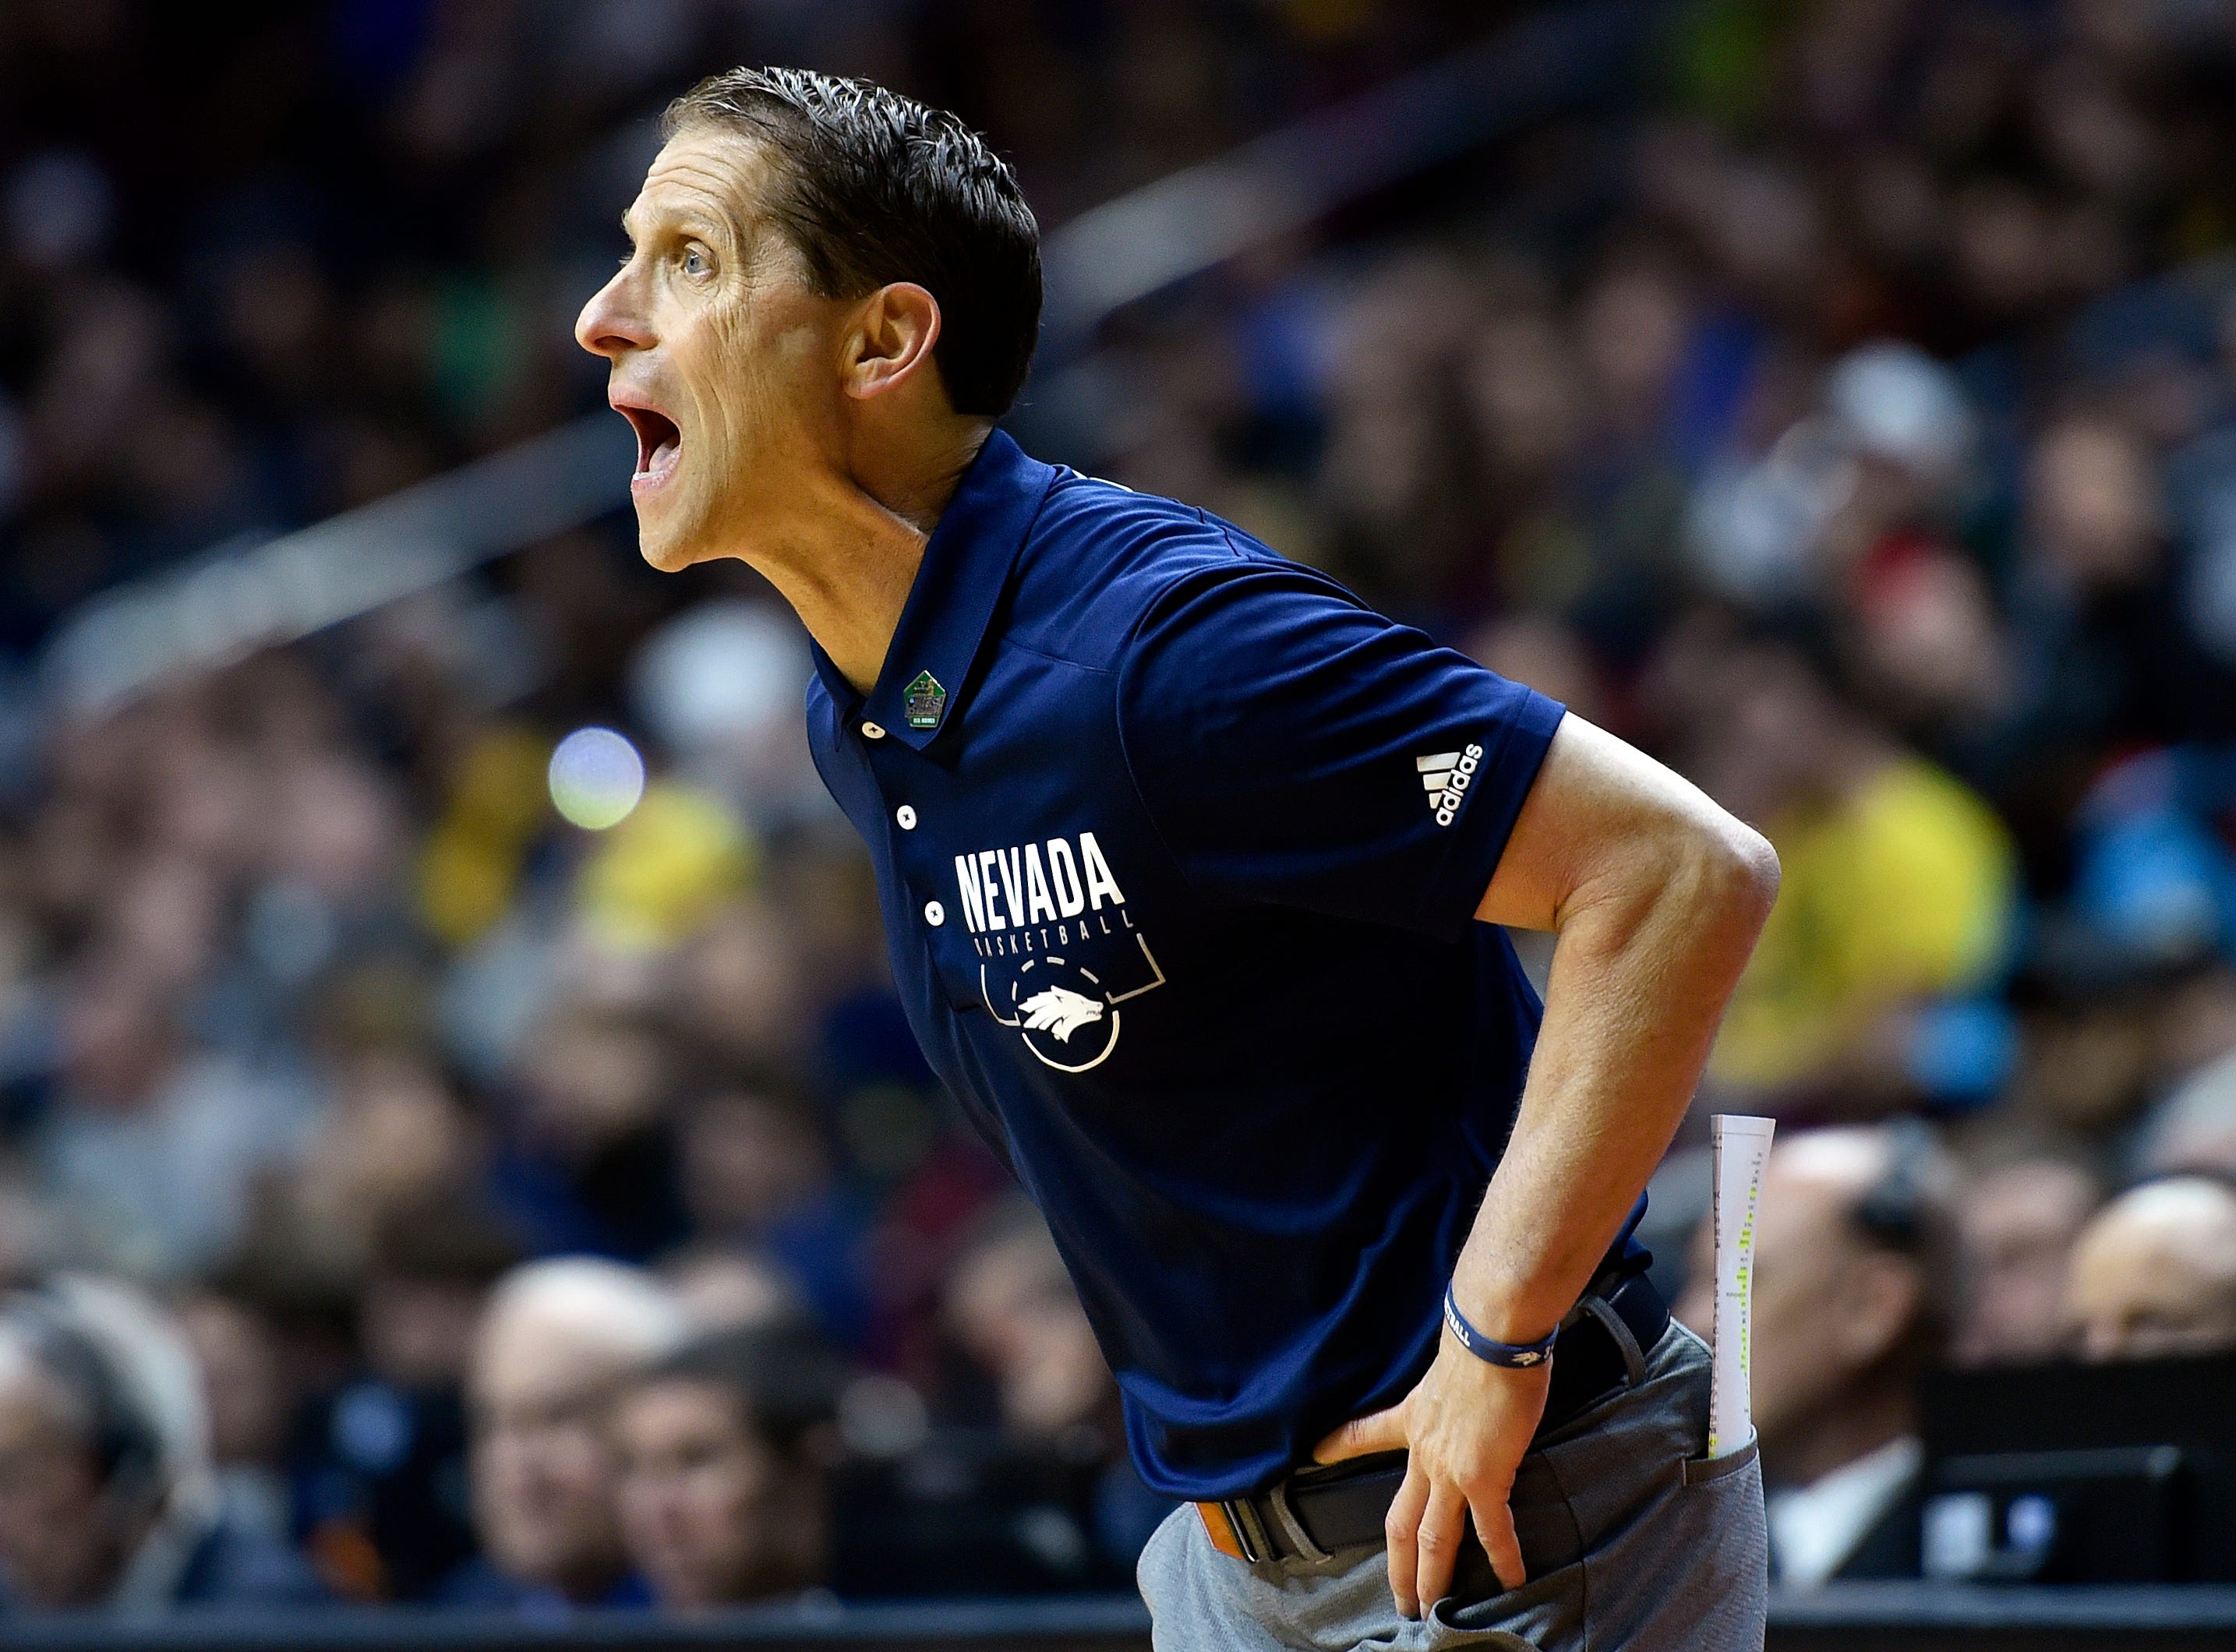 Mar 21, 2019; Des Moines, IA, United States; Nevada Wolf Pack head coach Eric Musselman during the first half against the Florida Gators in the first round of the 2019 NCAA Tournament at Wells Fargo Arena. Mandatory Credit: Jeffrey Becker-USA TODAY Sports